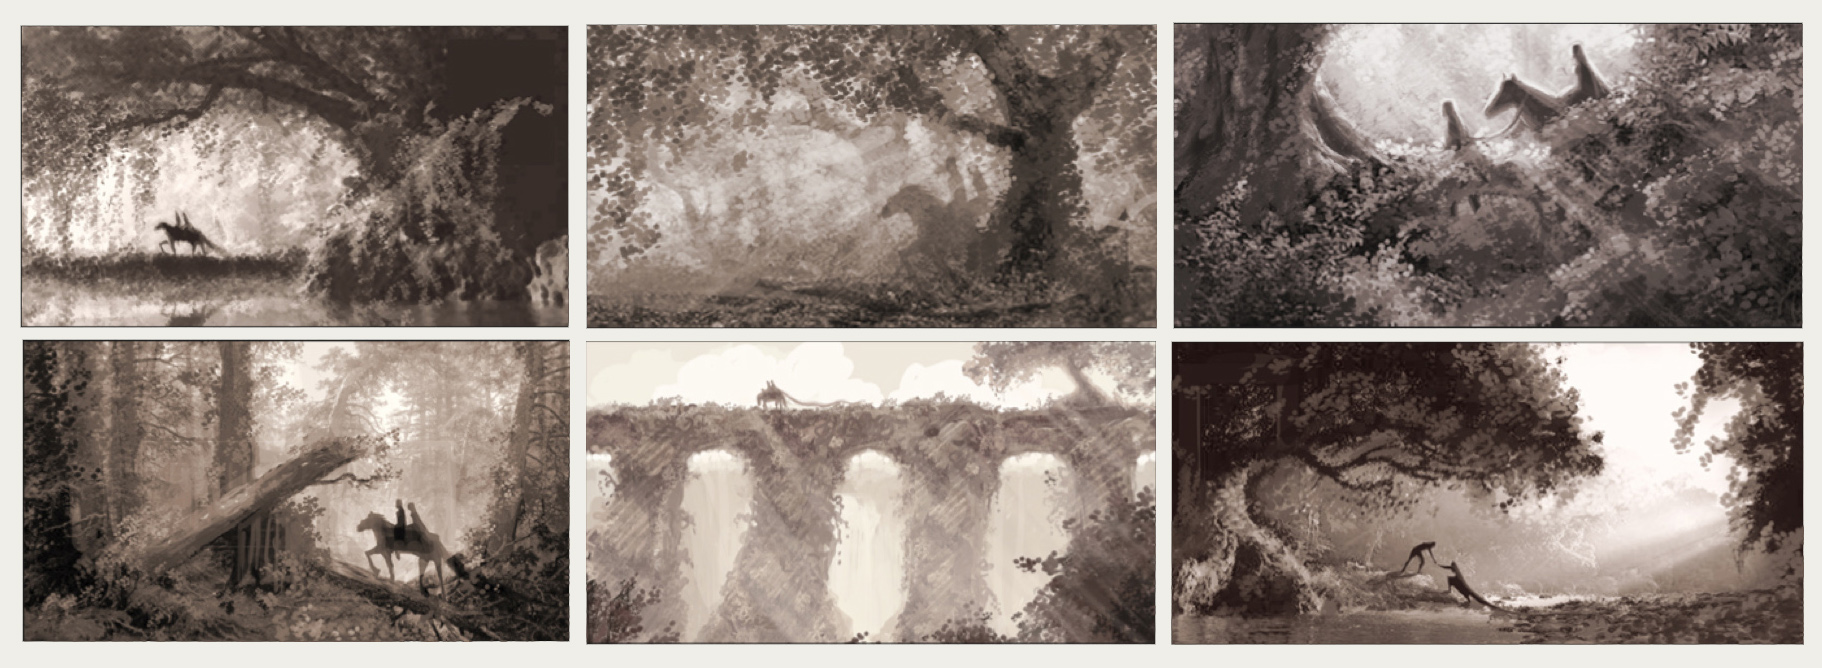 FOREST WALK SKETCHES //VISUAL DEVELOPMENT FOR TANGLED